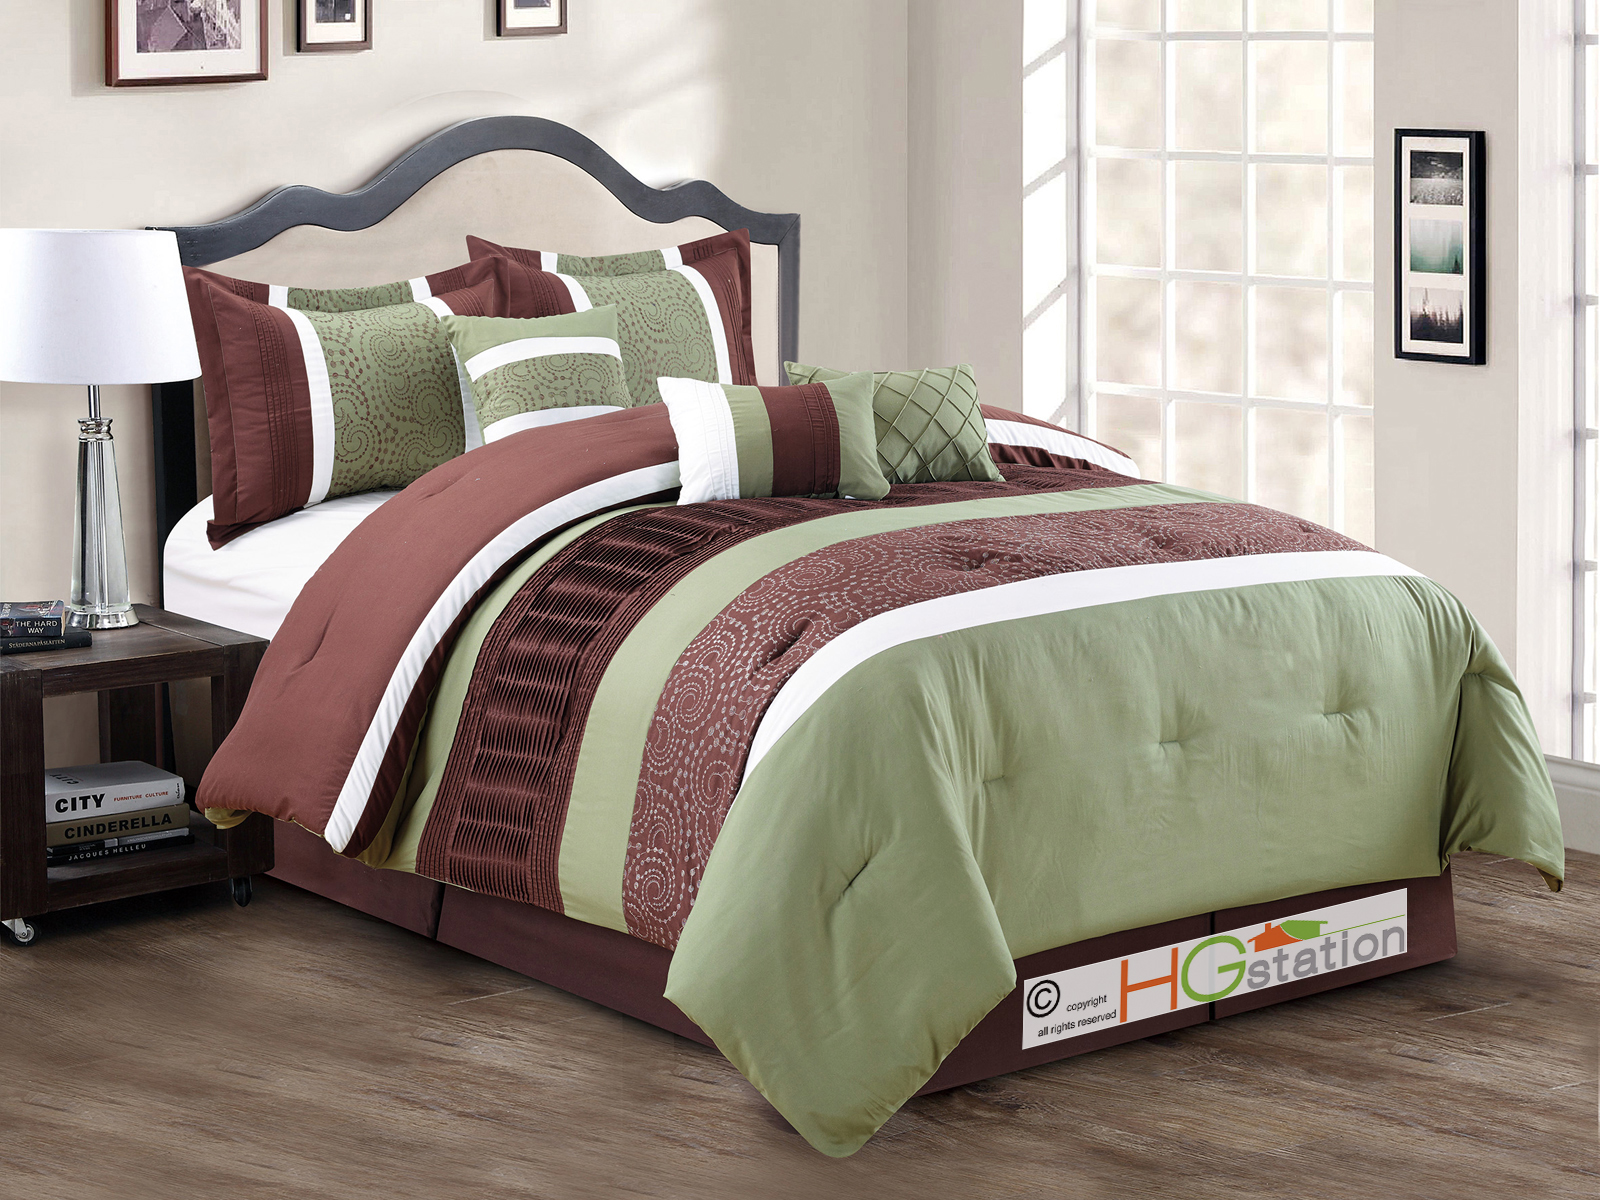 7 pc spores scroll floral embroidery ruffled comforter set - Green and brown comforter ...